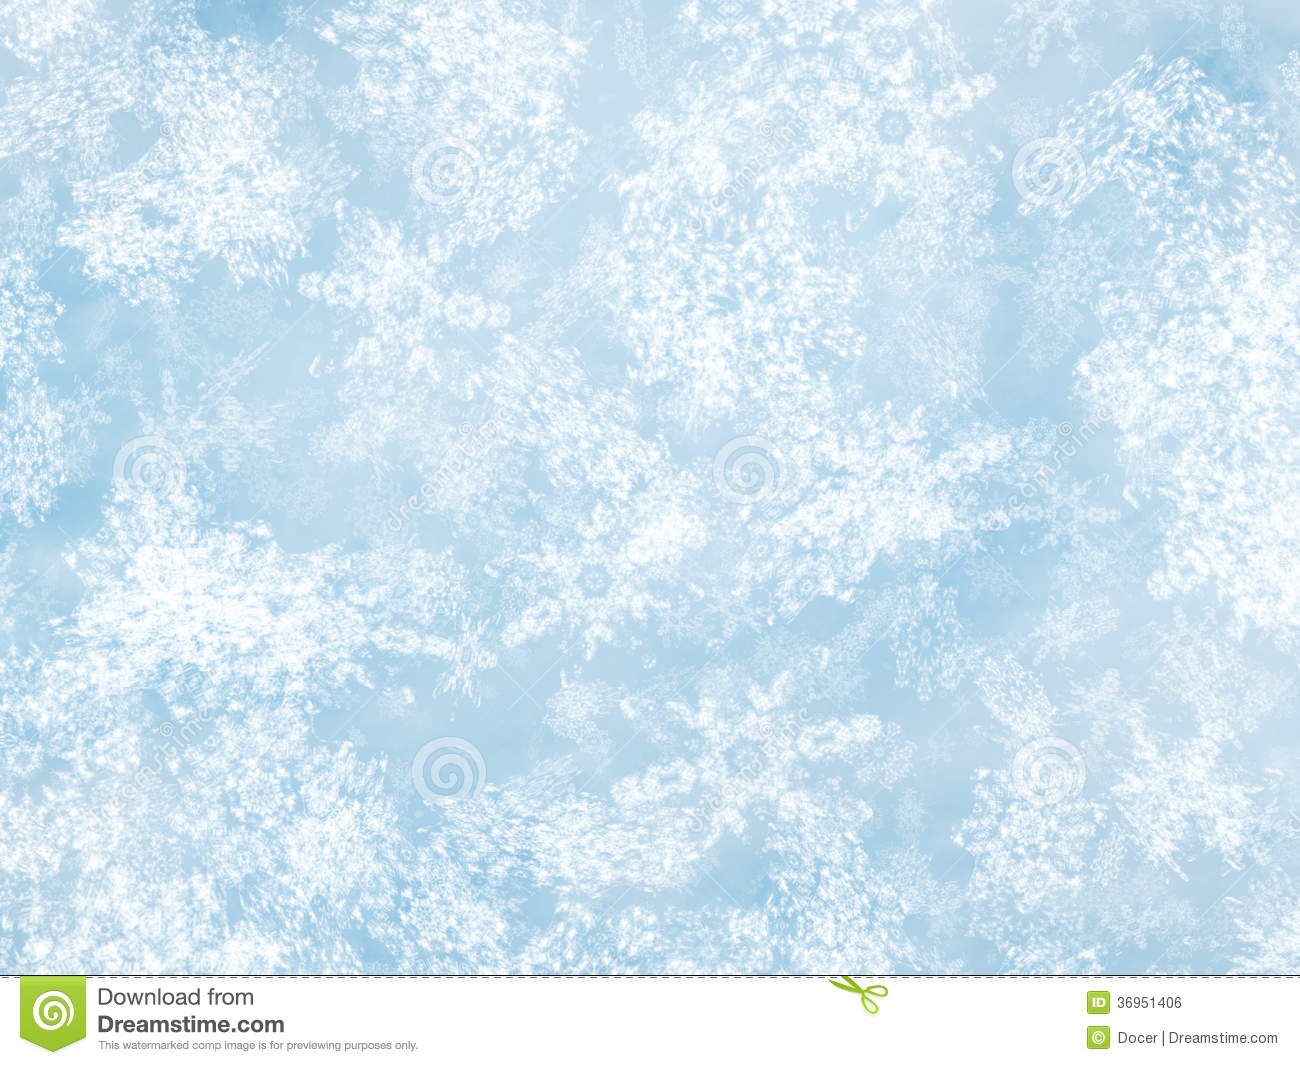 Falling From Stars Wallpaper Motion Snowfall Backgrounds Of A Sunlight Cold Weather